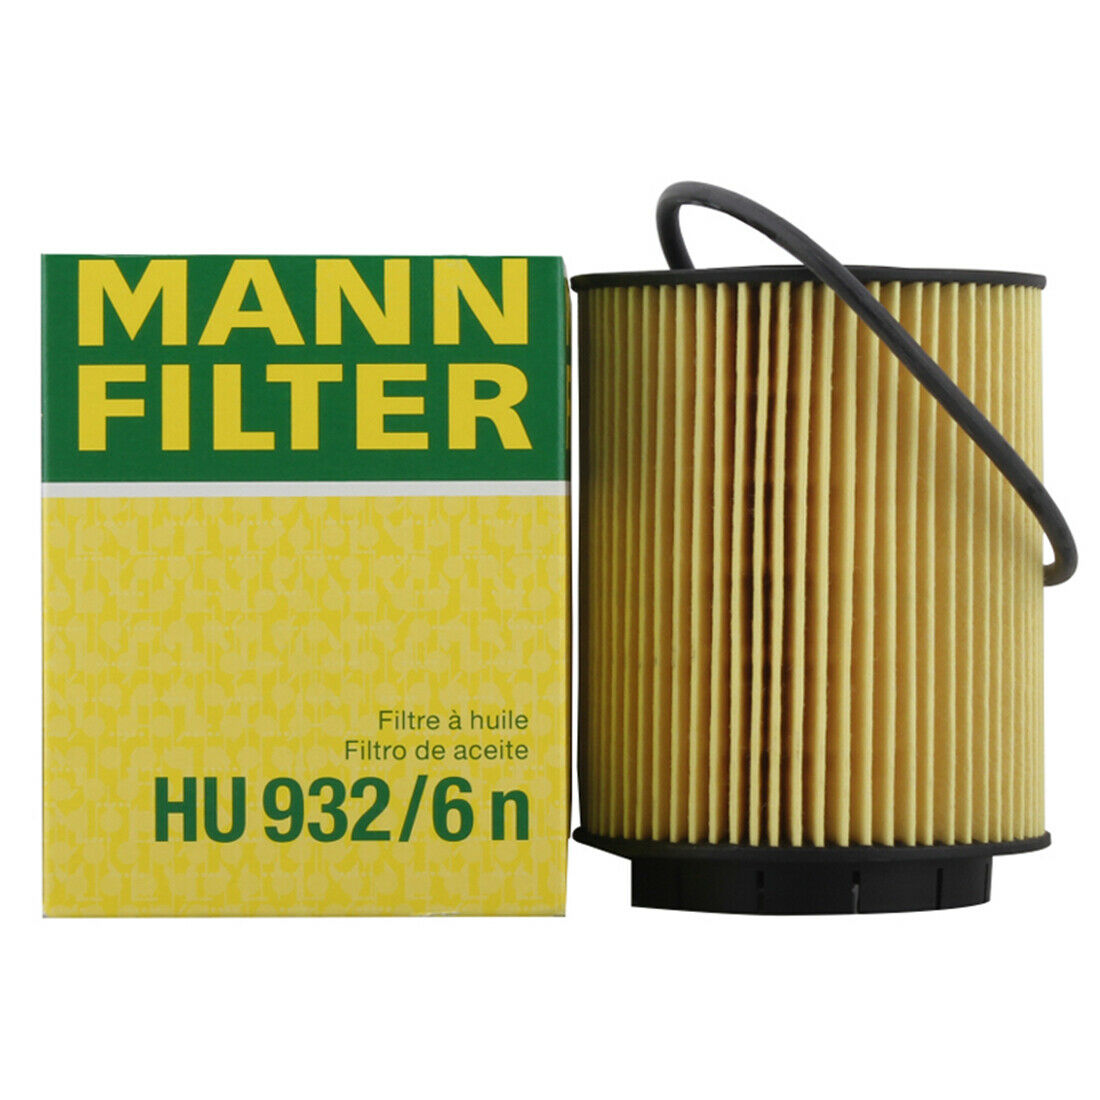 VW Touareg 7L7 3.6 V6 FSI Genuine MANN Engine Oil Filter Service Replacement